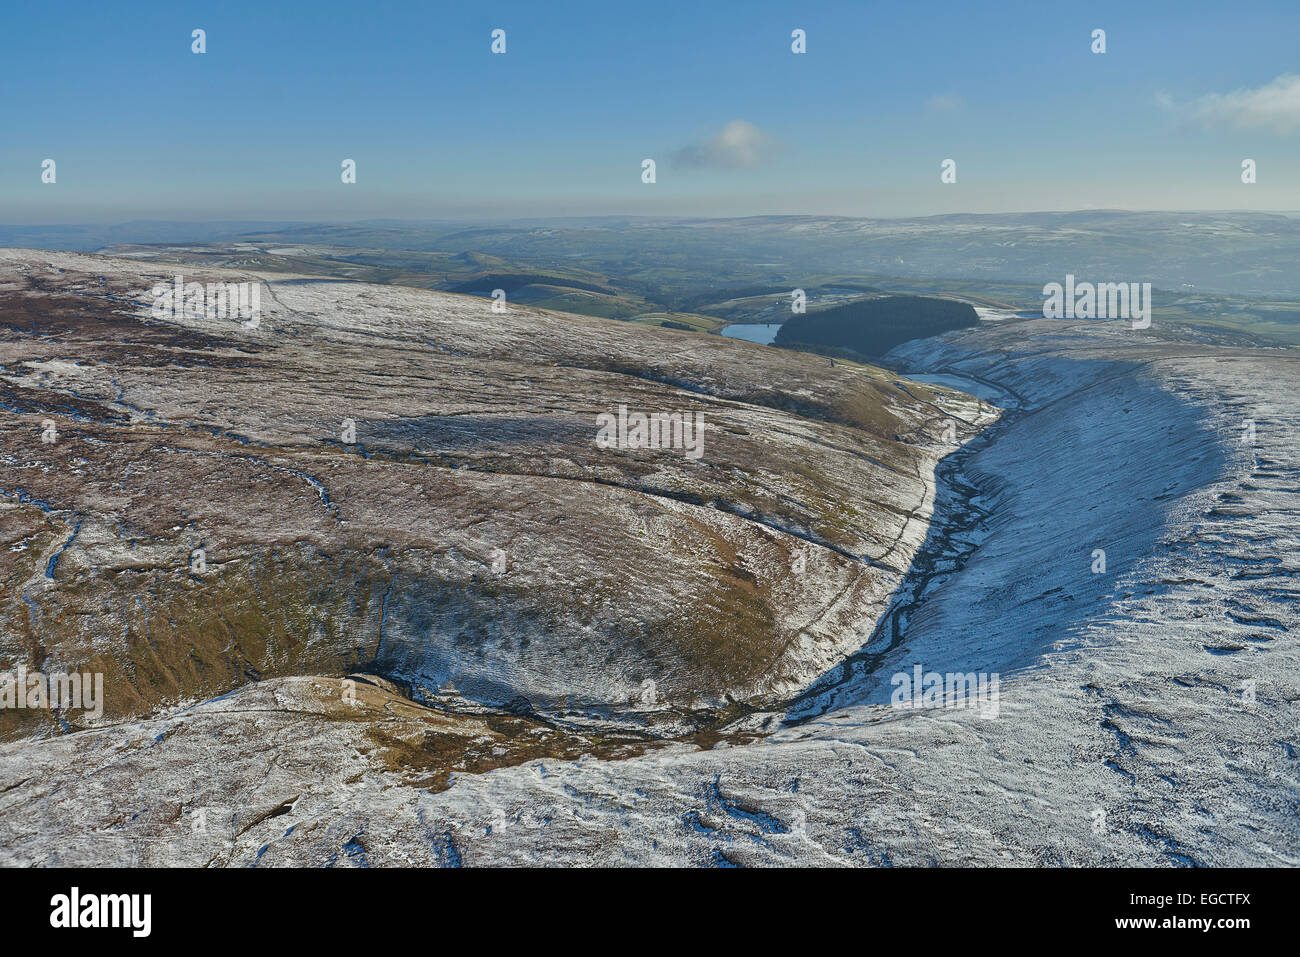 Aerial photograph of Ogden Clough, Ogden Reservoirs and Fell Wood. - Stock Image